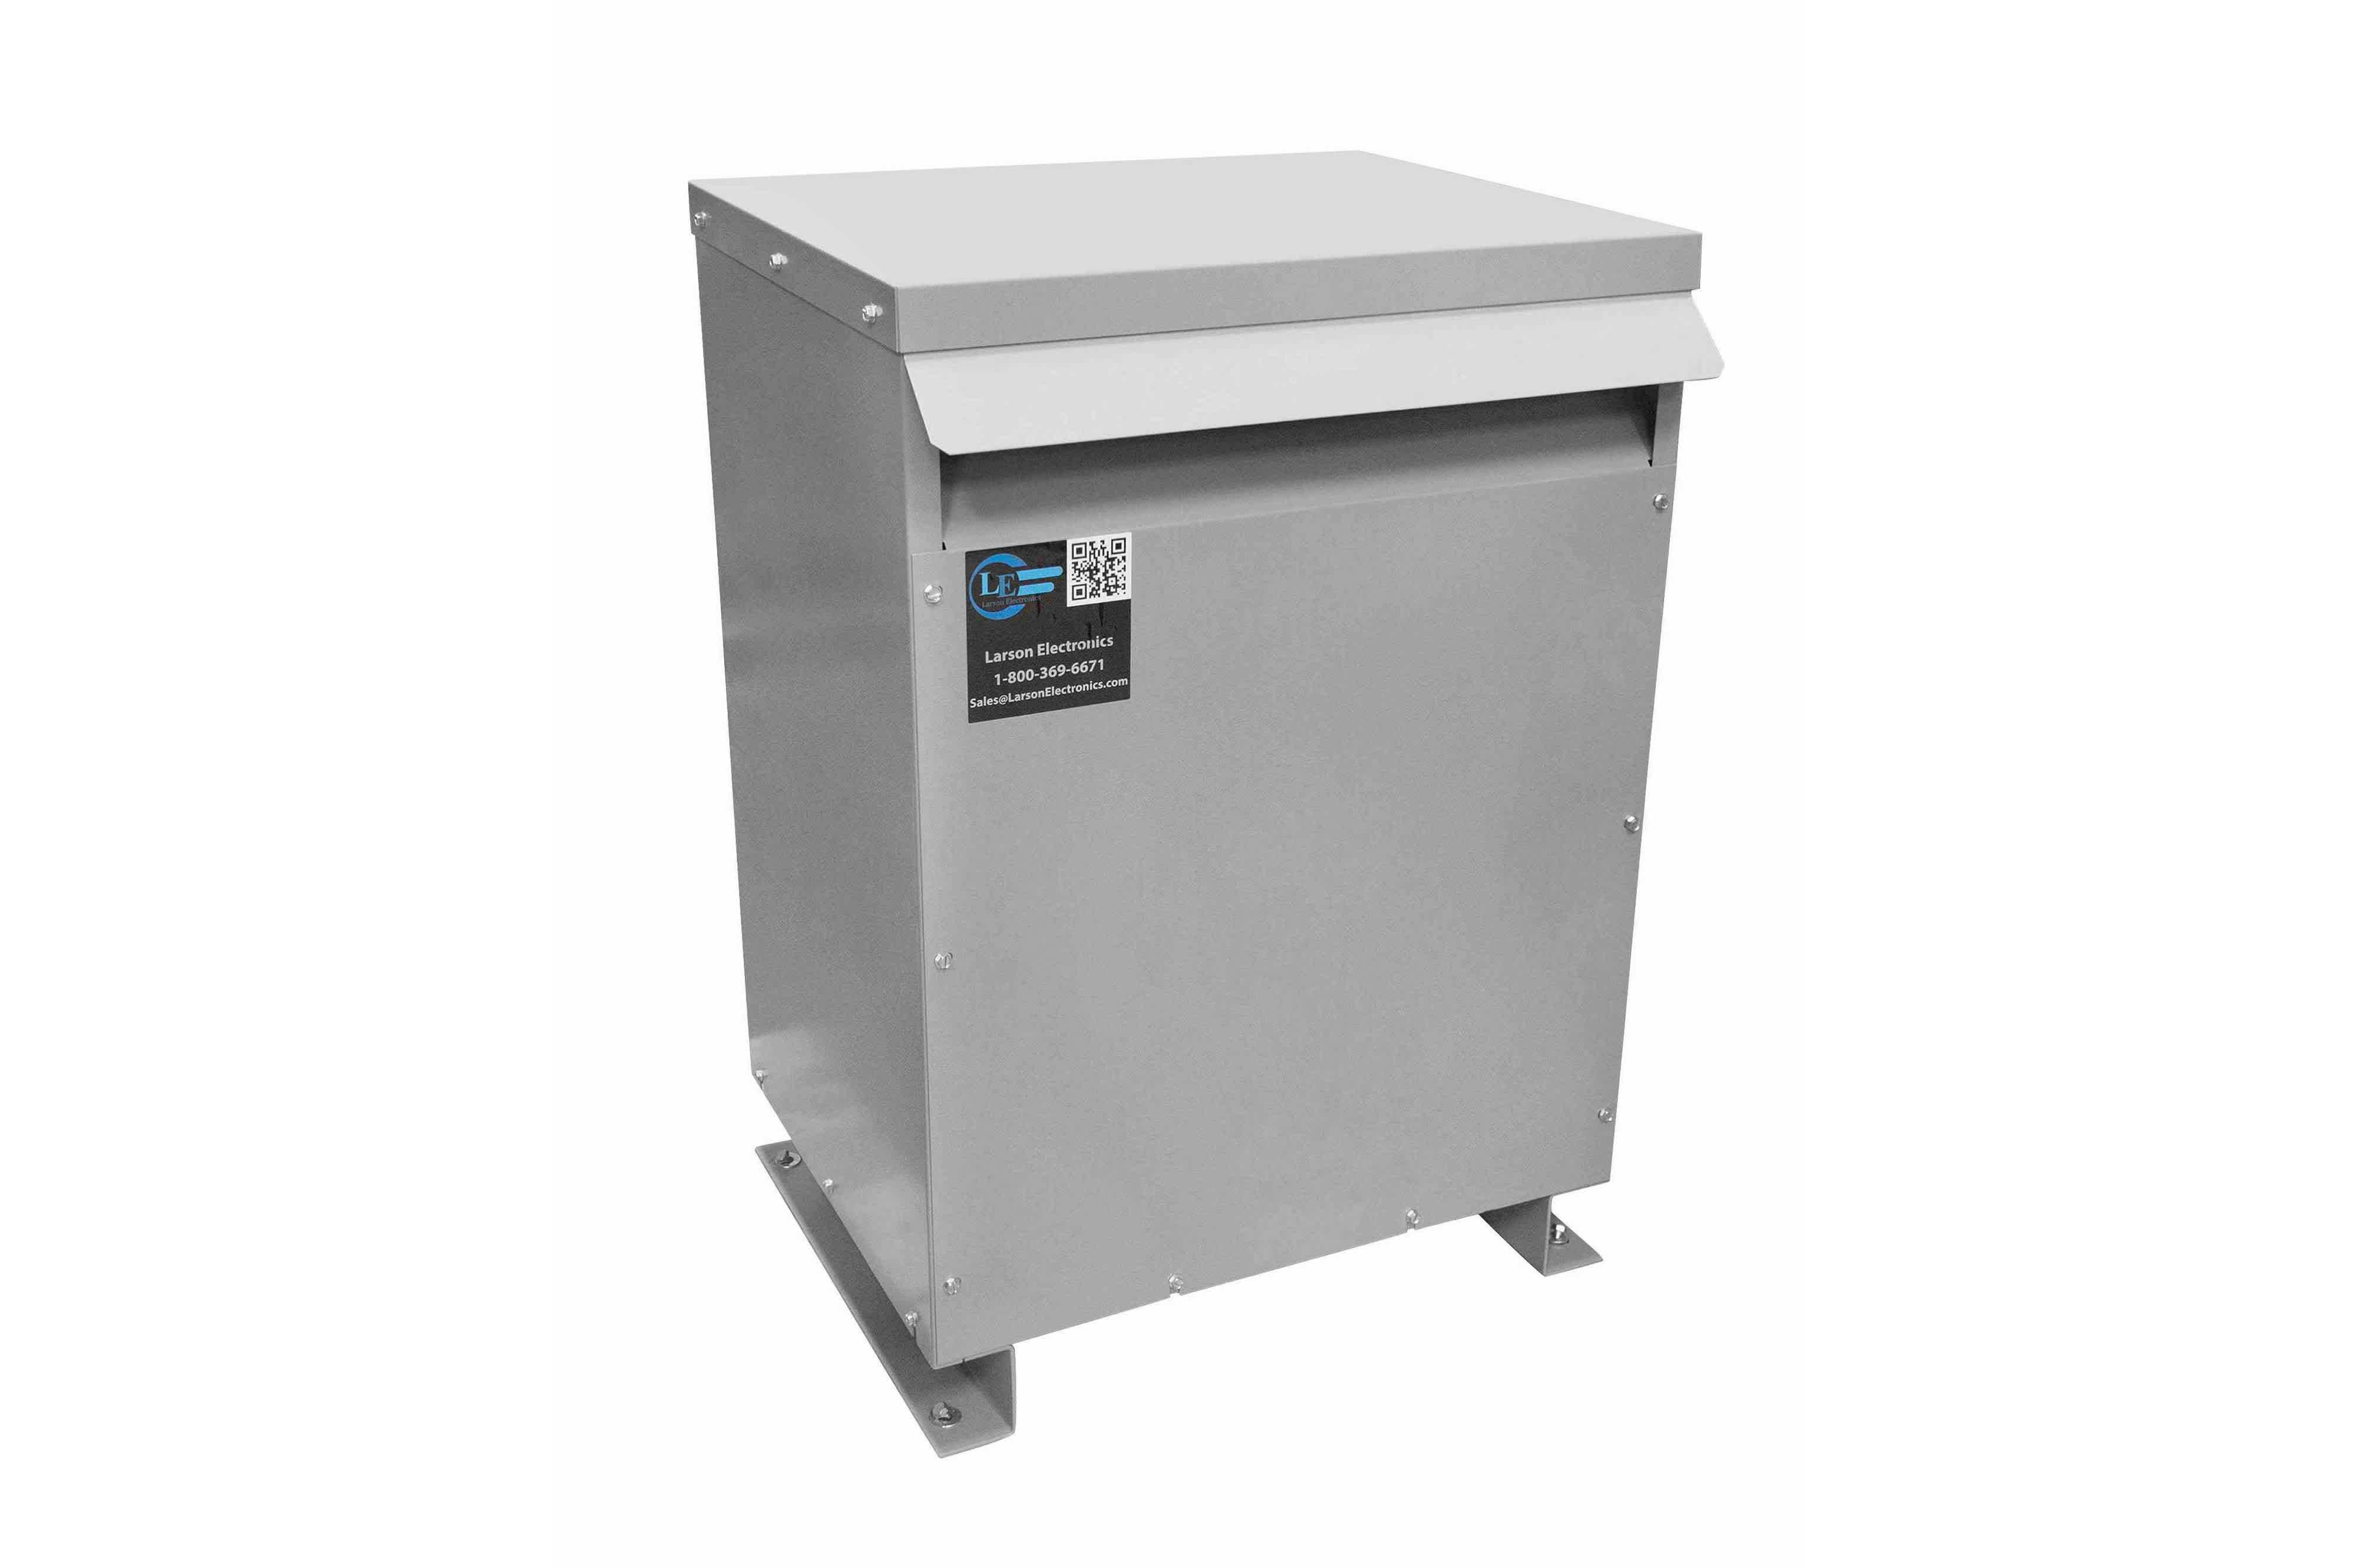 225 kVA 3PH Isolation Transformer, 240V Wye Primary, 415V Delta Secondary, N3R, Ventilated, 60 Hz